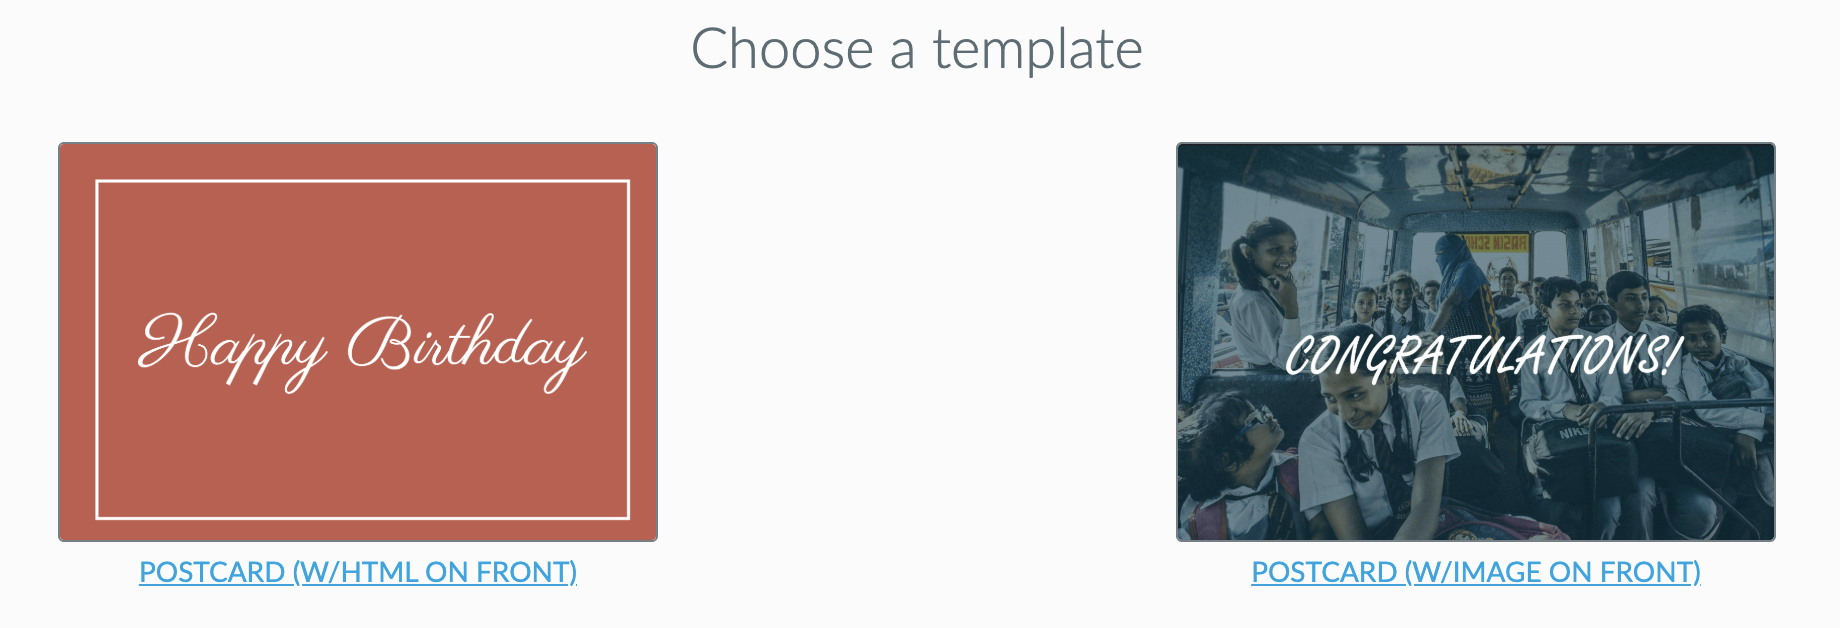 Choose_Postcard_Template.png